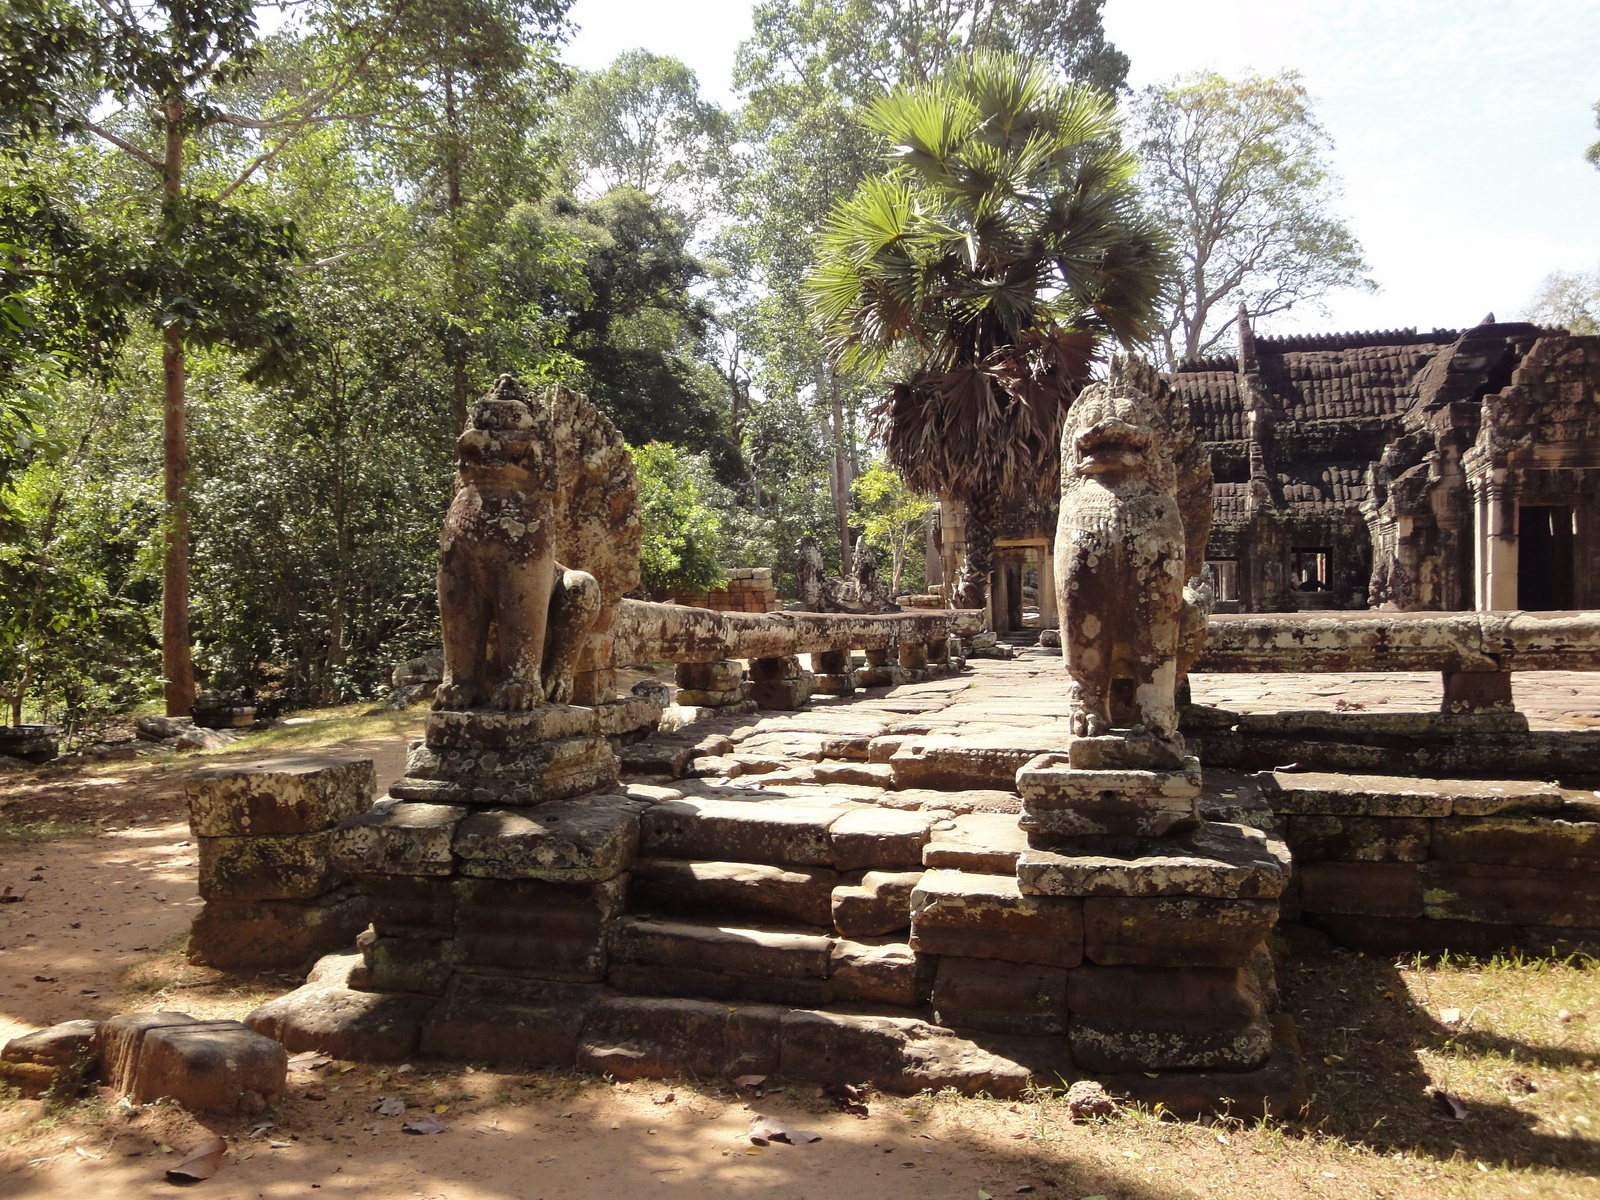 B Banteay Kdei Temple terrace with naga balustrade lion guardians Angkor 06